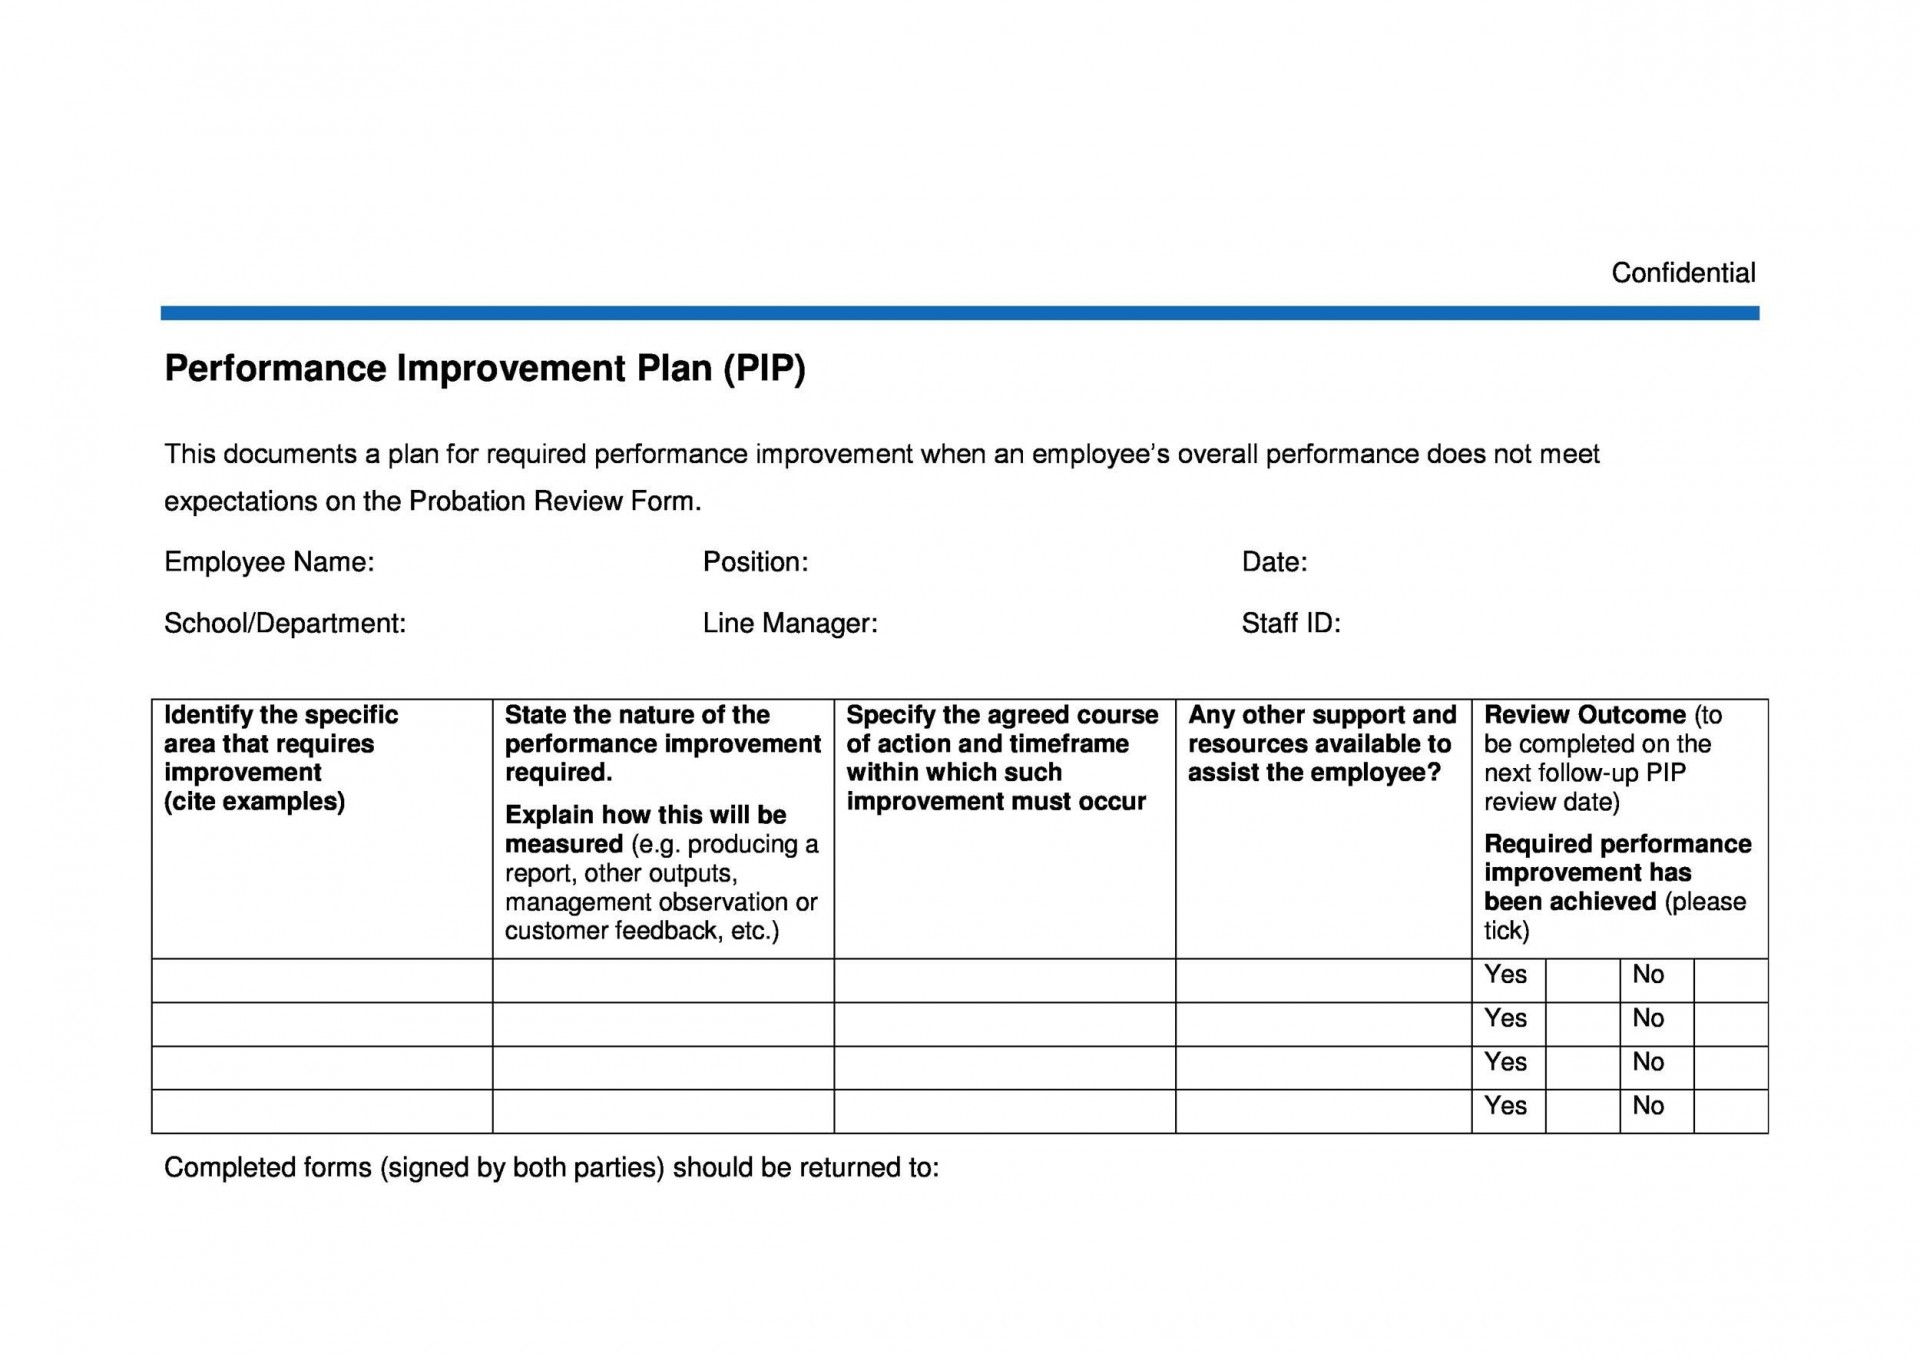 008 Marvelou Employee Improvement Plan Template Picture  Work Performance Example1920